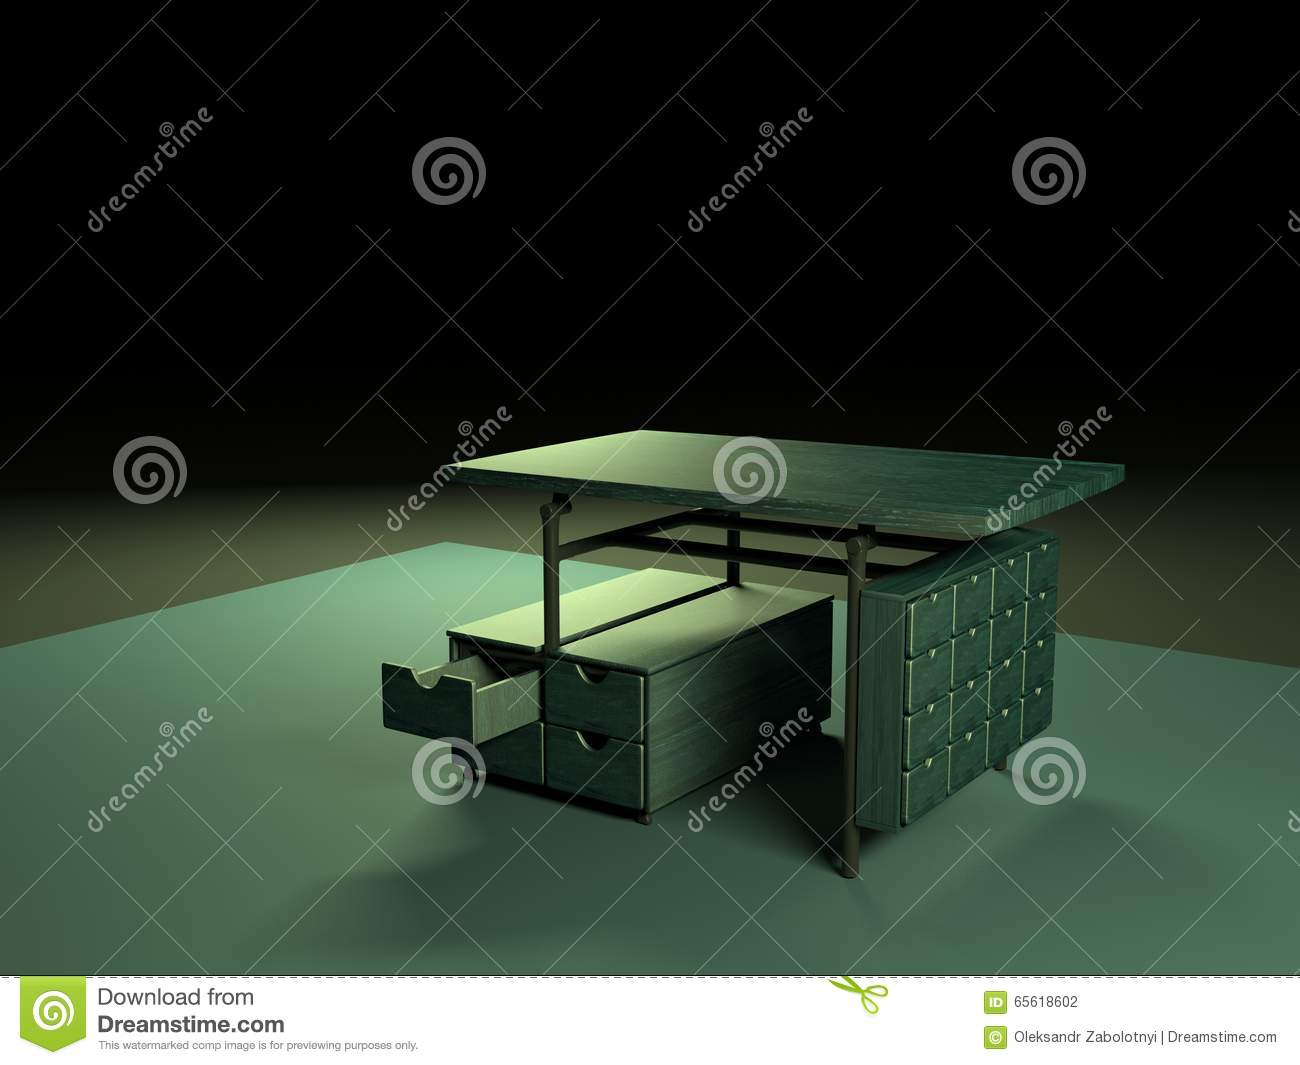 Folding table 3d model-4 stock illustration  Illustration of